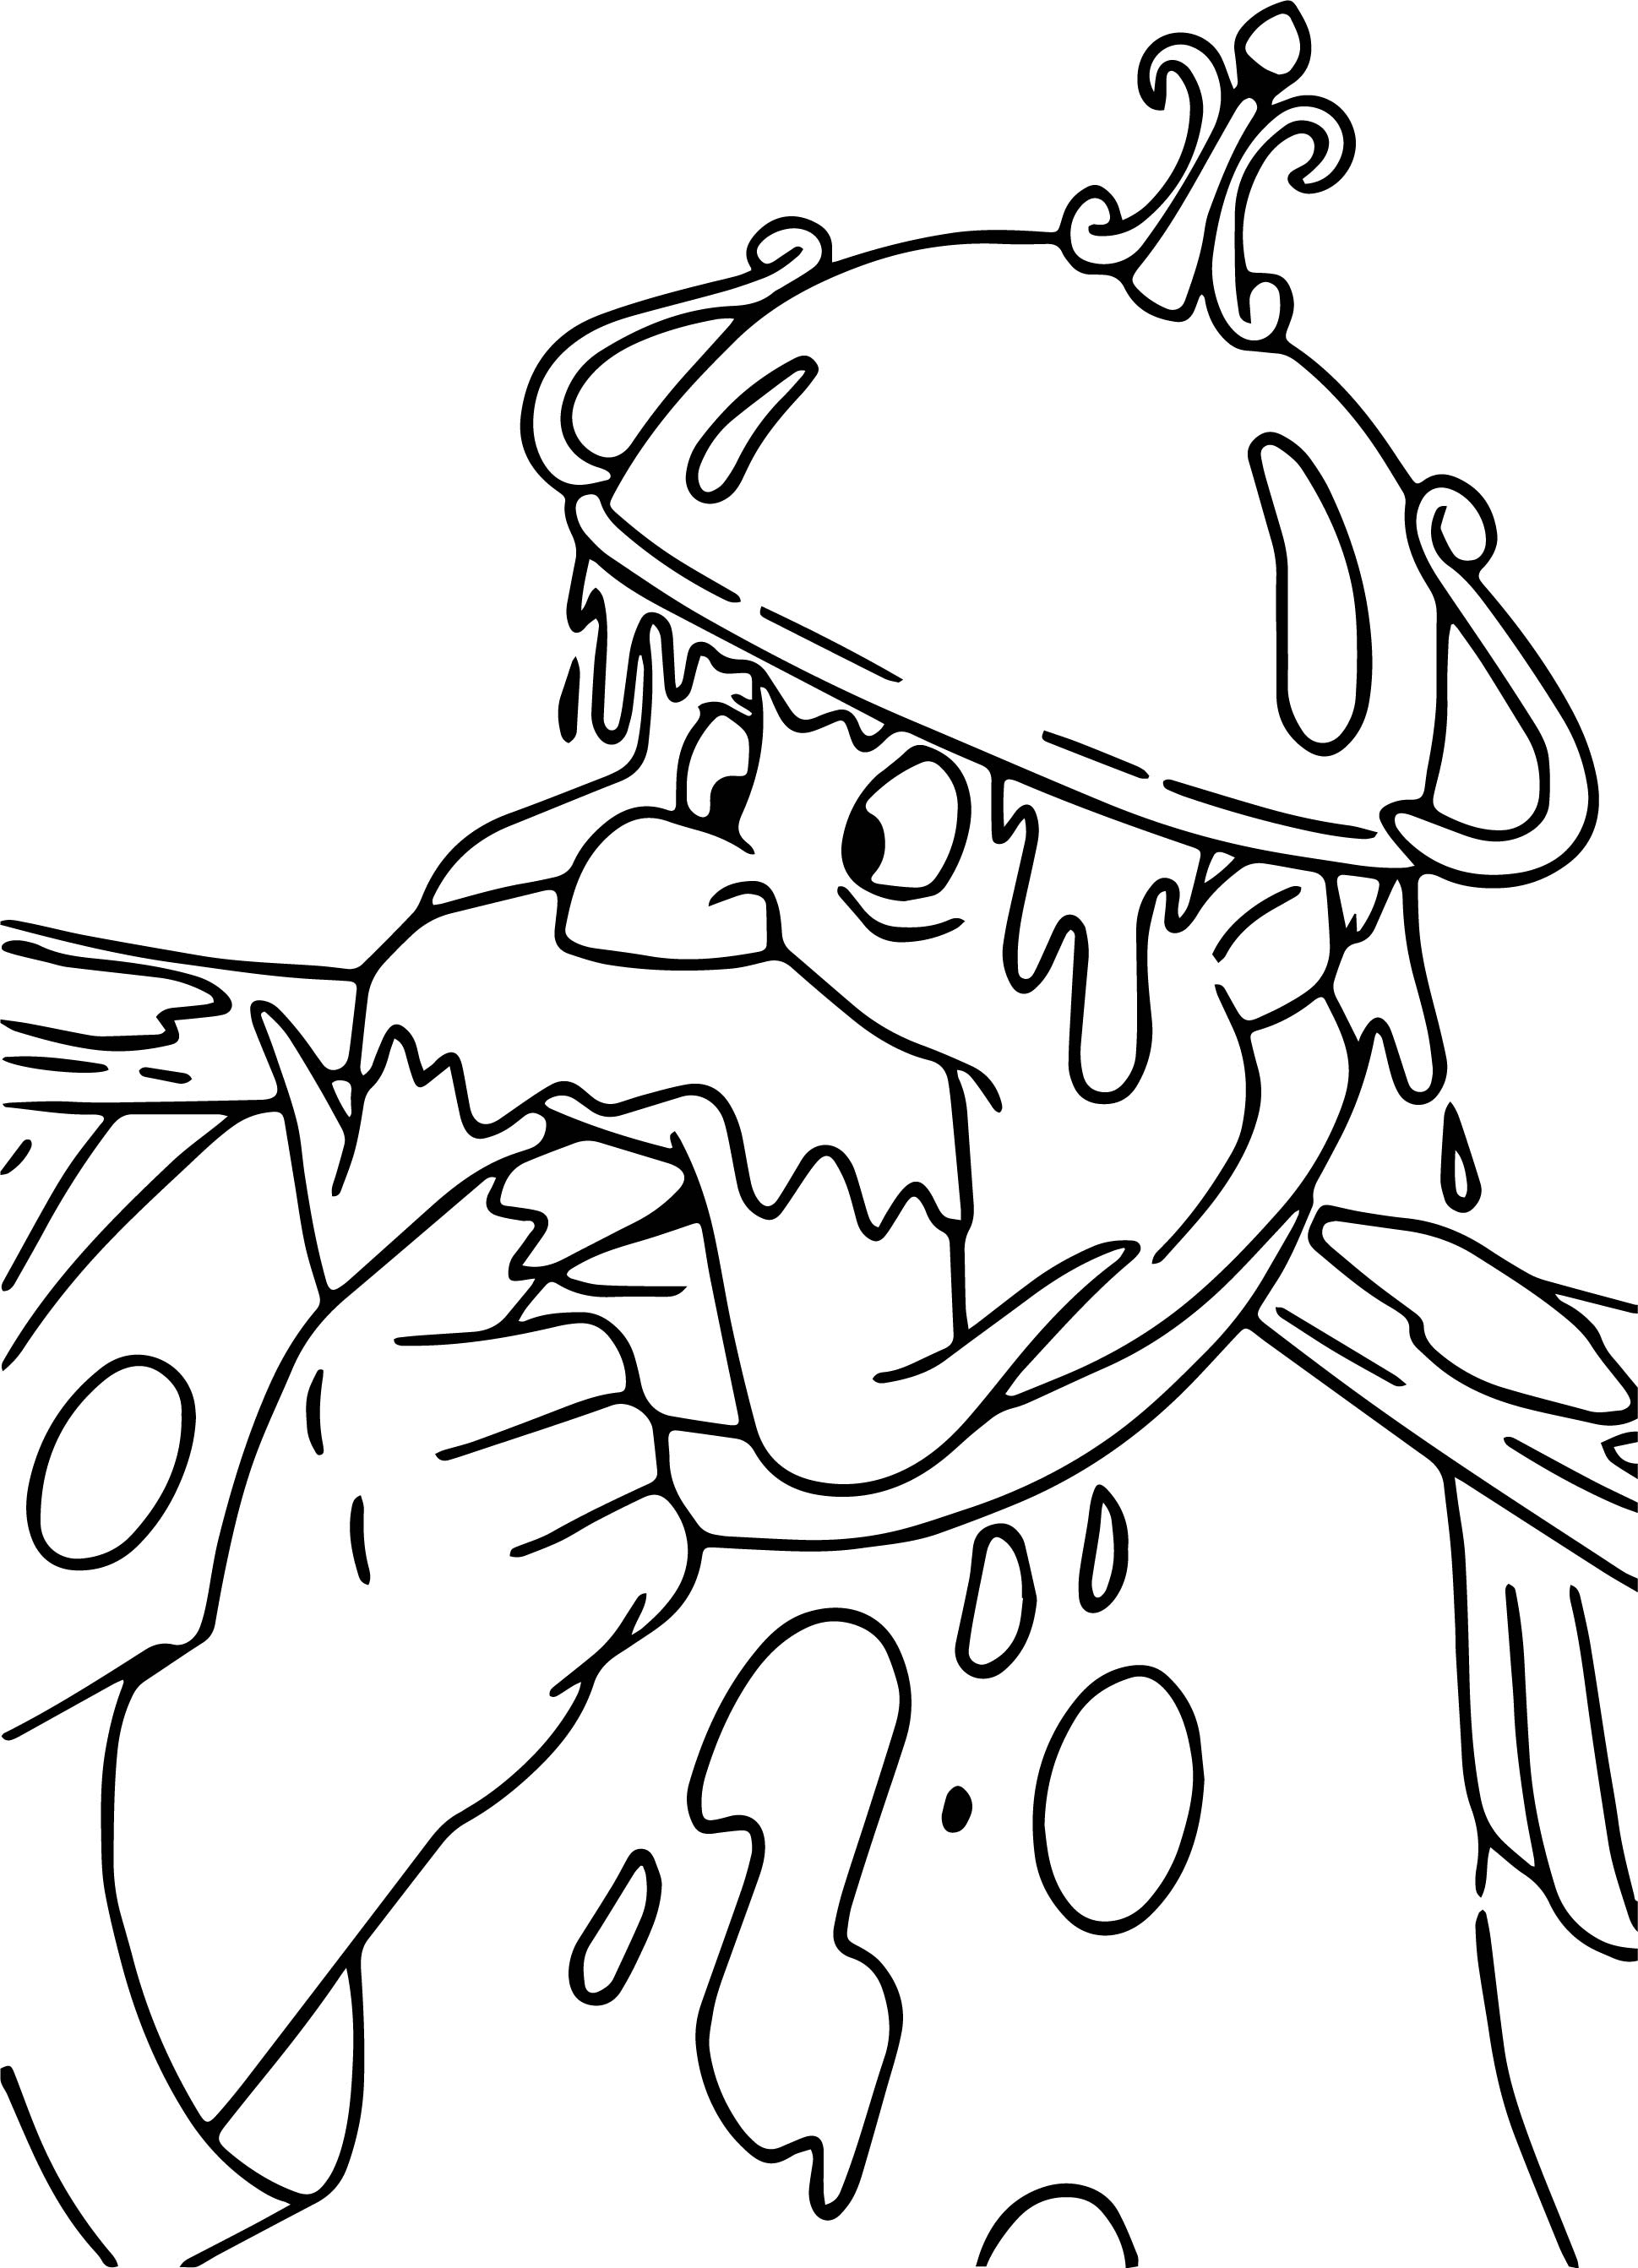 King Sauce Coloring Page